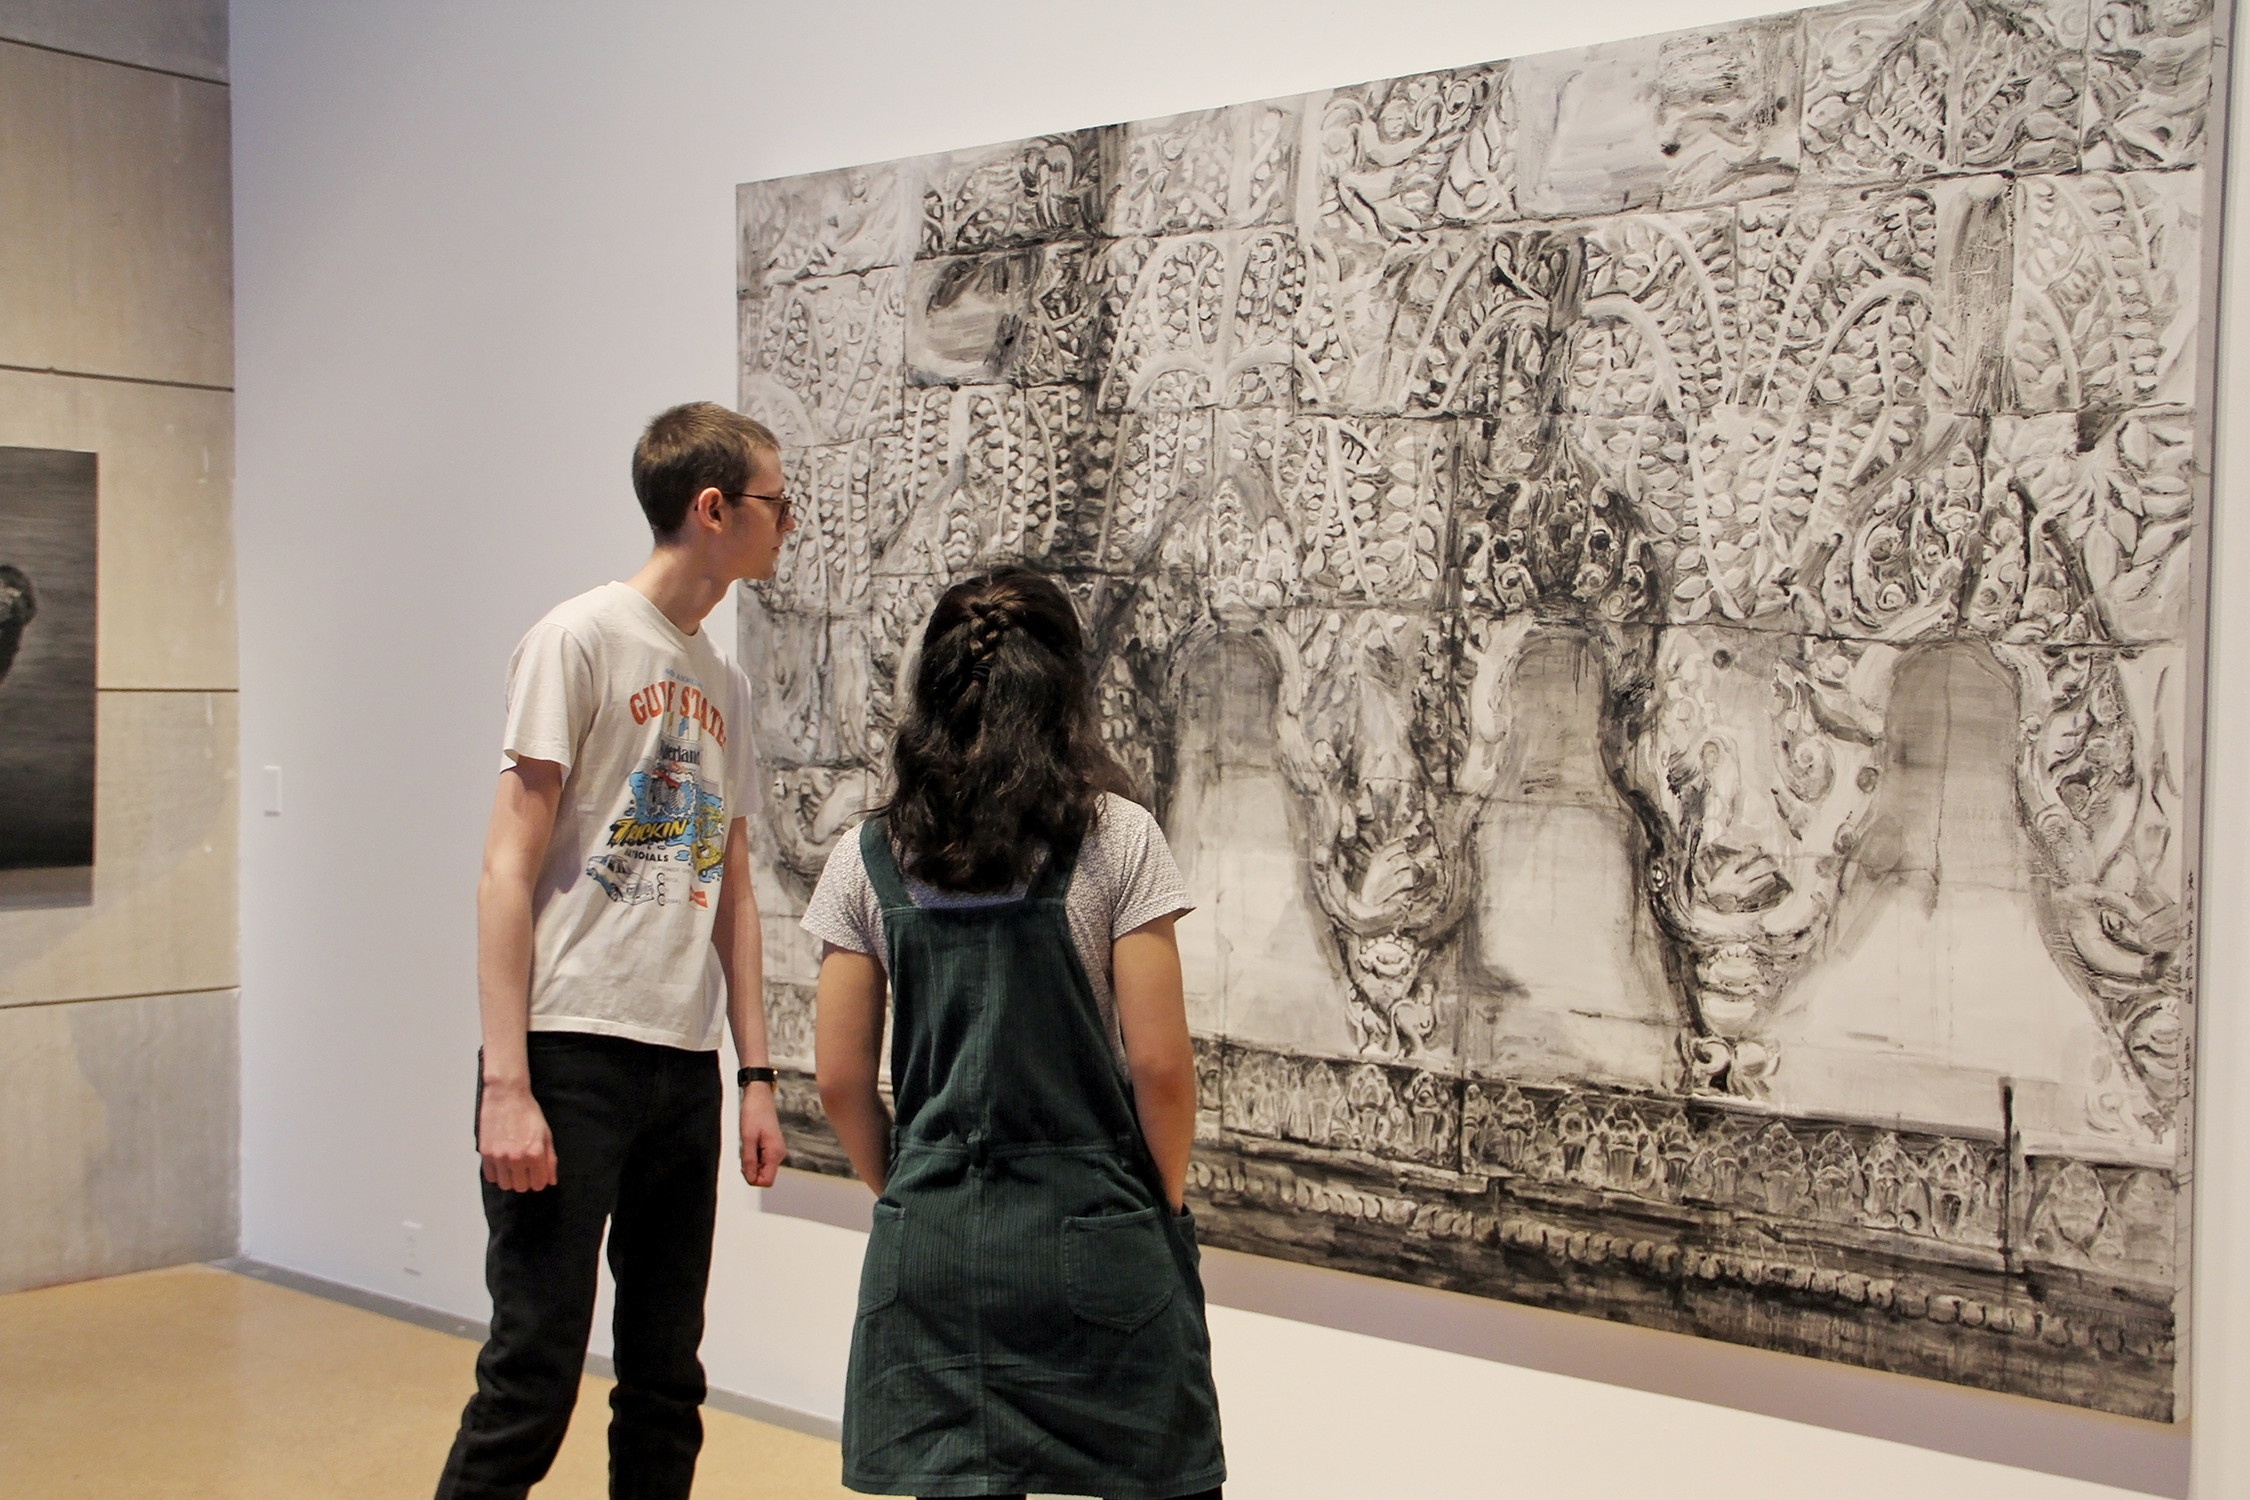 We Chat: A Dialogue in Contemporary Chinese Art, the first gallery exhibition highlighting artists born after the Cultural Revolution, offered a variety of academic opportunities. Photo by Olivia Drake MALS '08.